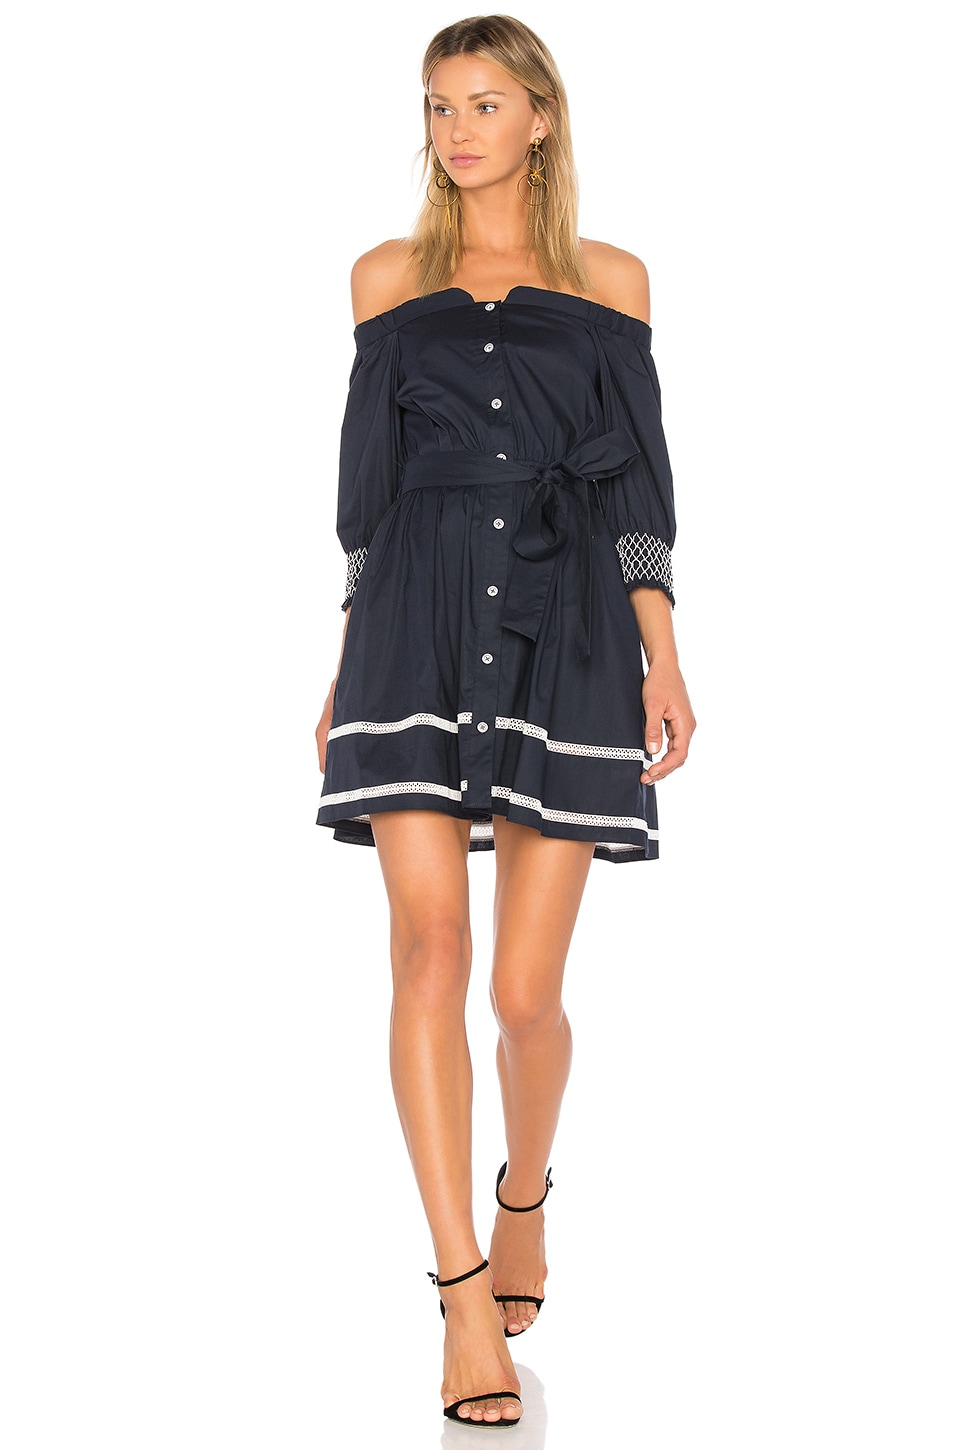 Tanya Taylor Brittany Dress in Navy